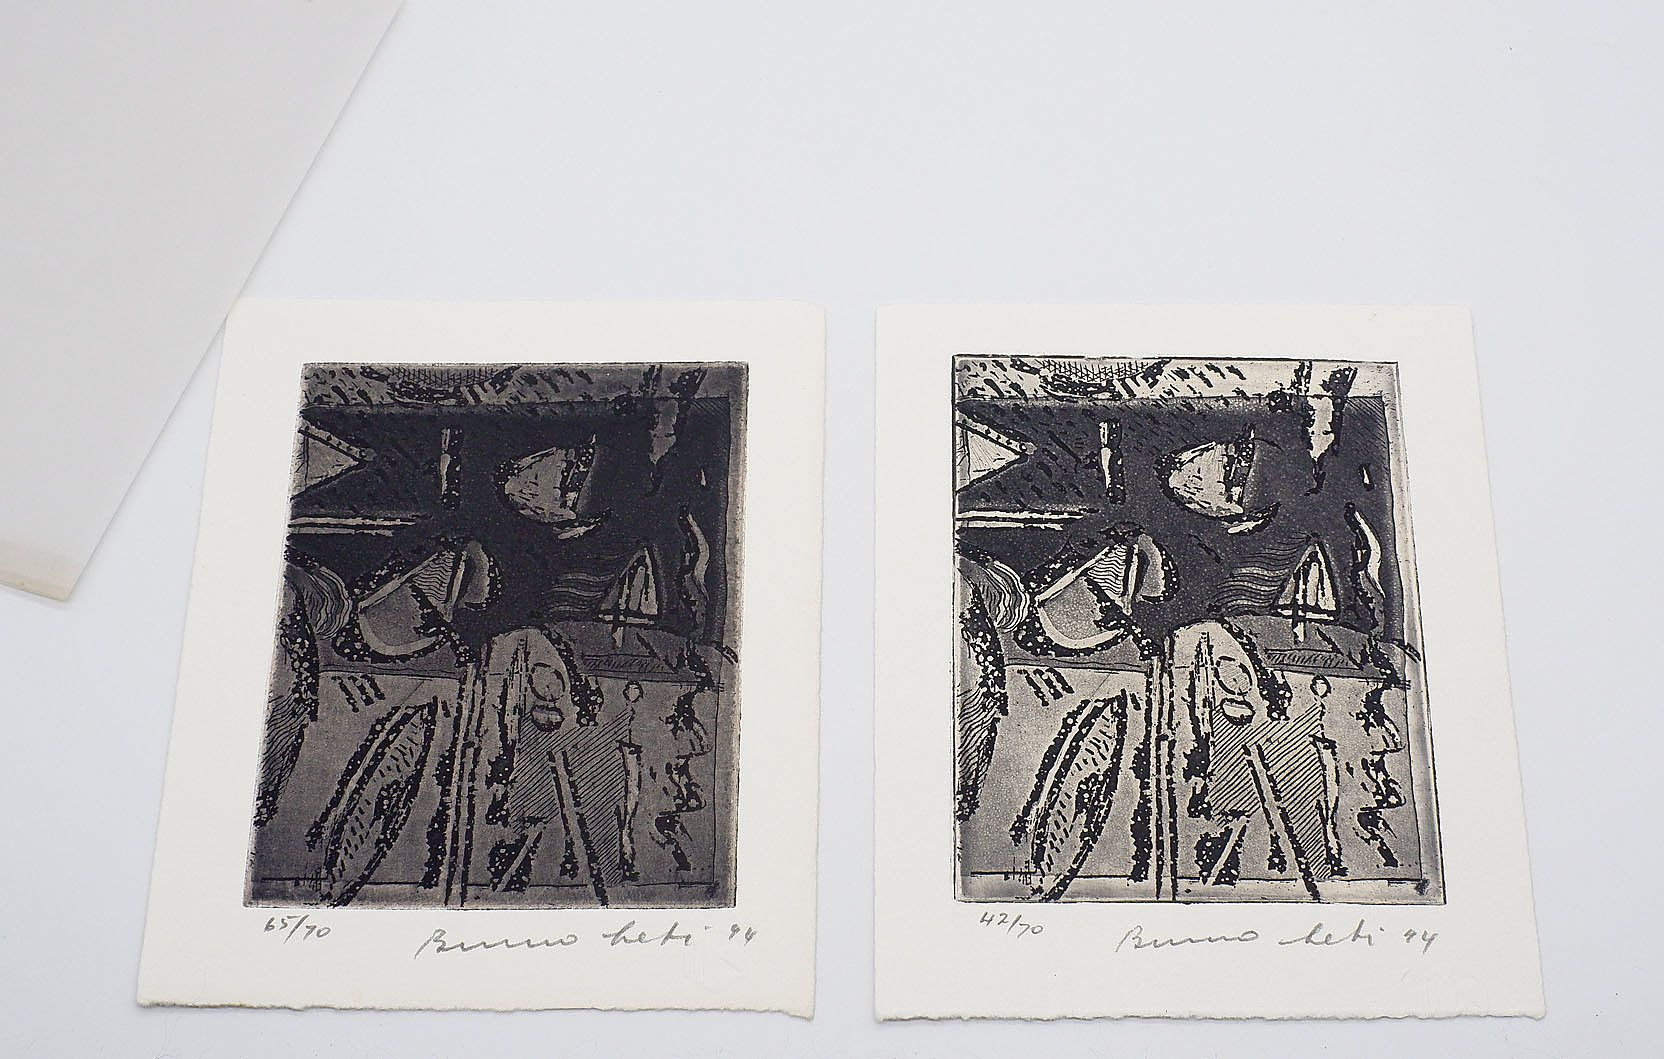 'A Small Book on Bruno Letis Monotypes, Sasha Grishin 1994, Accompanied by Two Bruno Leti Etchings'